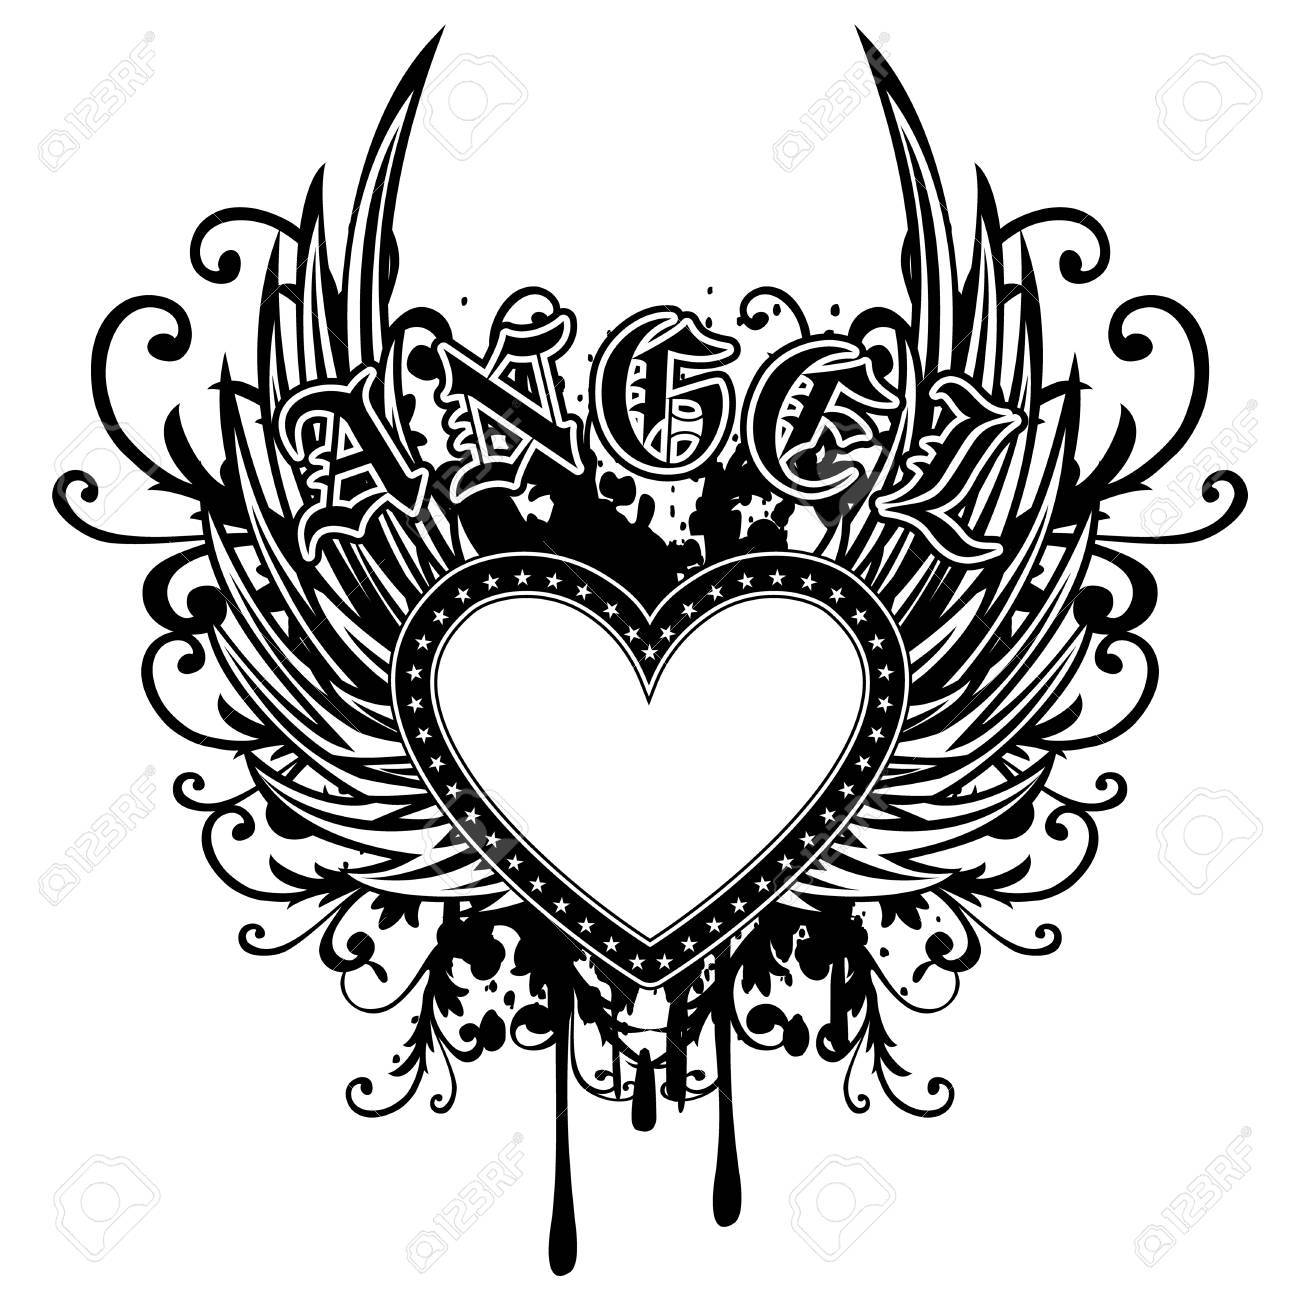 Image Coeur Noir Et Blanc abstract vector illustration frame coeur noir et blanc avec des